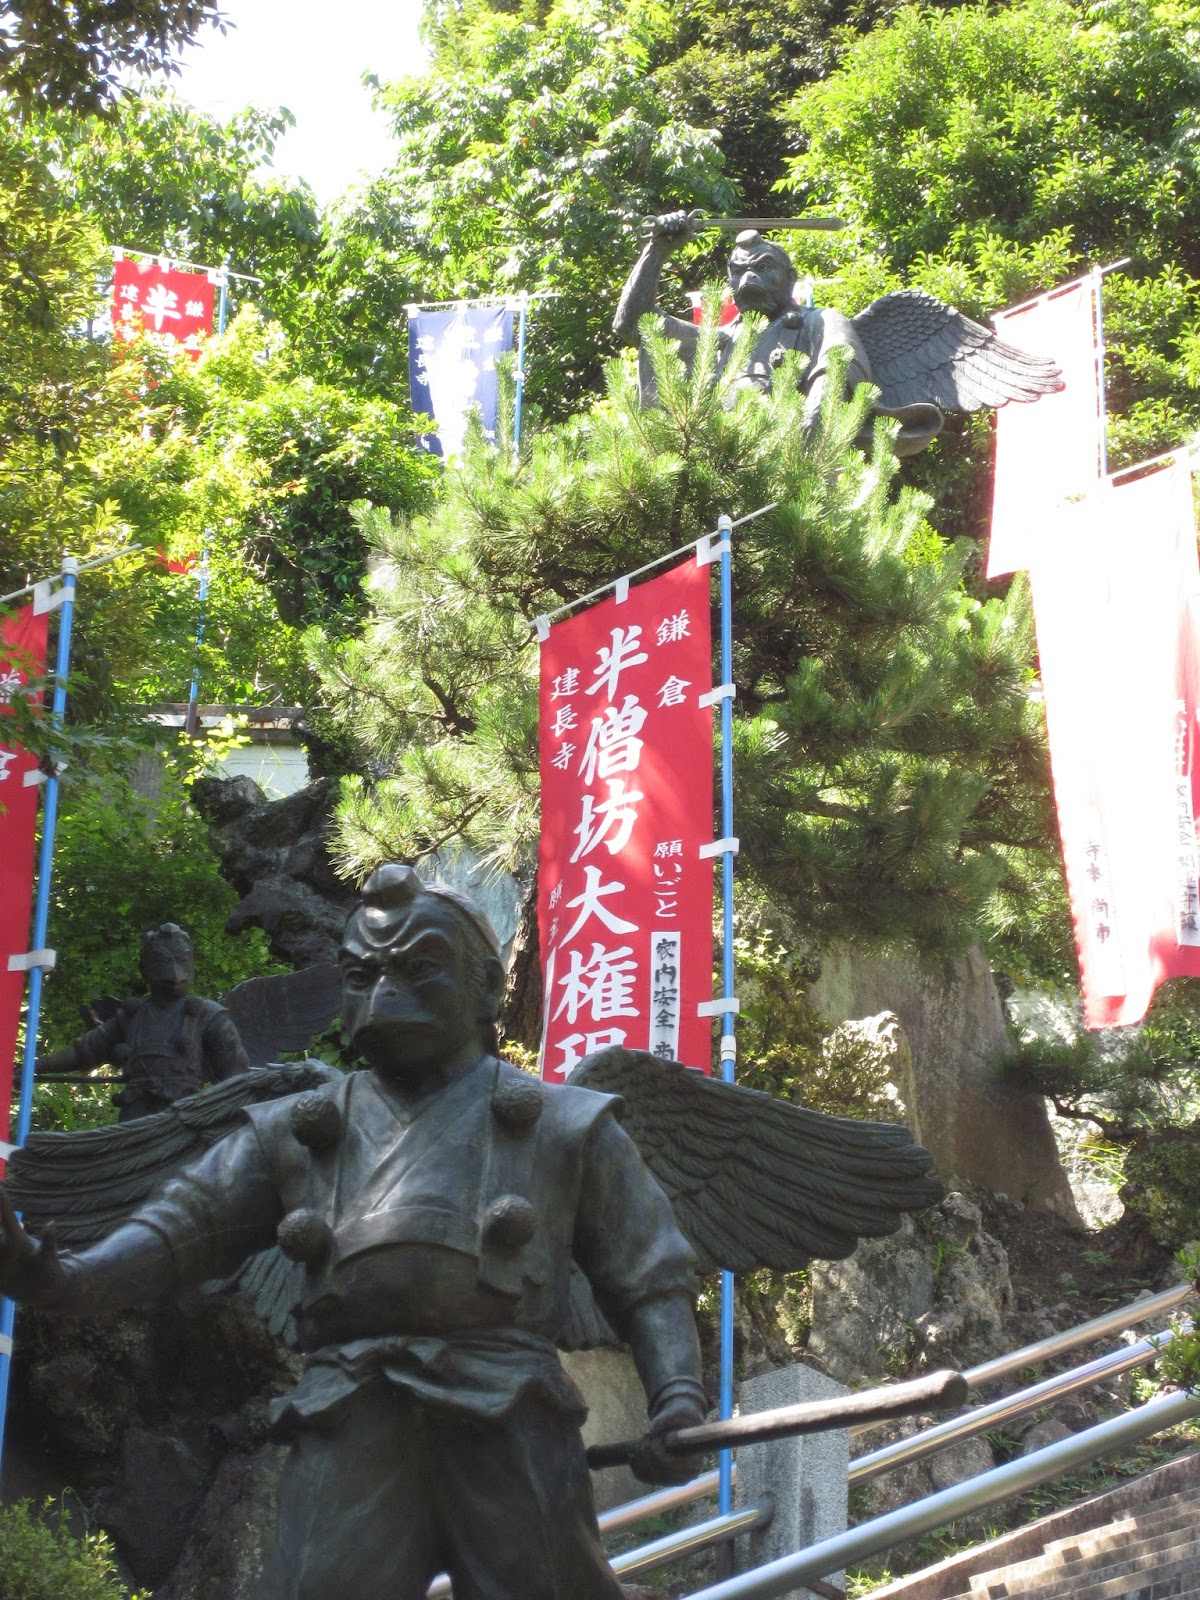 The japan chronicles crows in japan menace or guide of the gods the fierce crow tengu standing guard at the top of the mountain behind kench ji buycottarizona